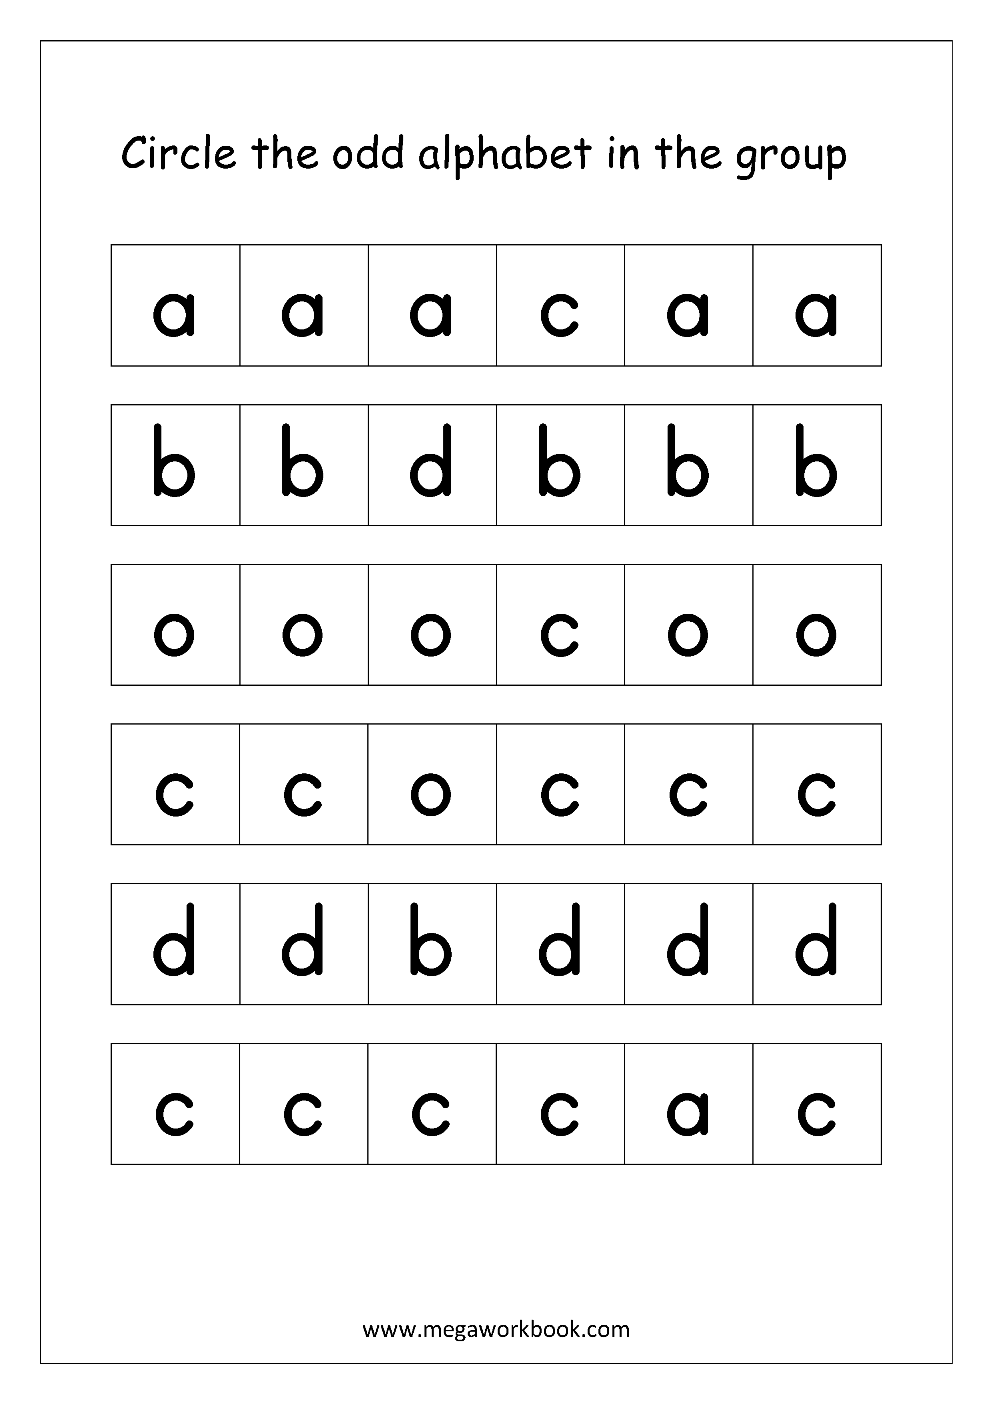 Free Printable English Worksheets For Kindergarten And Preschool